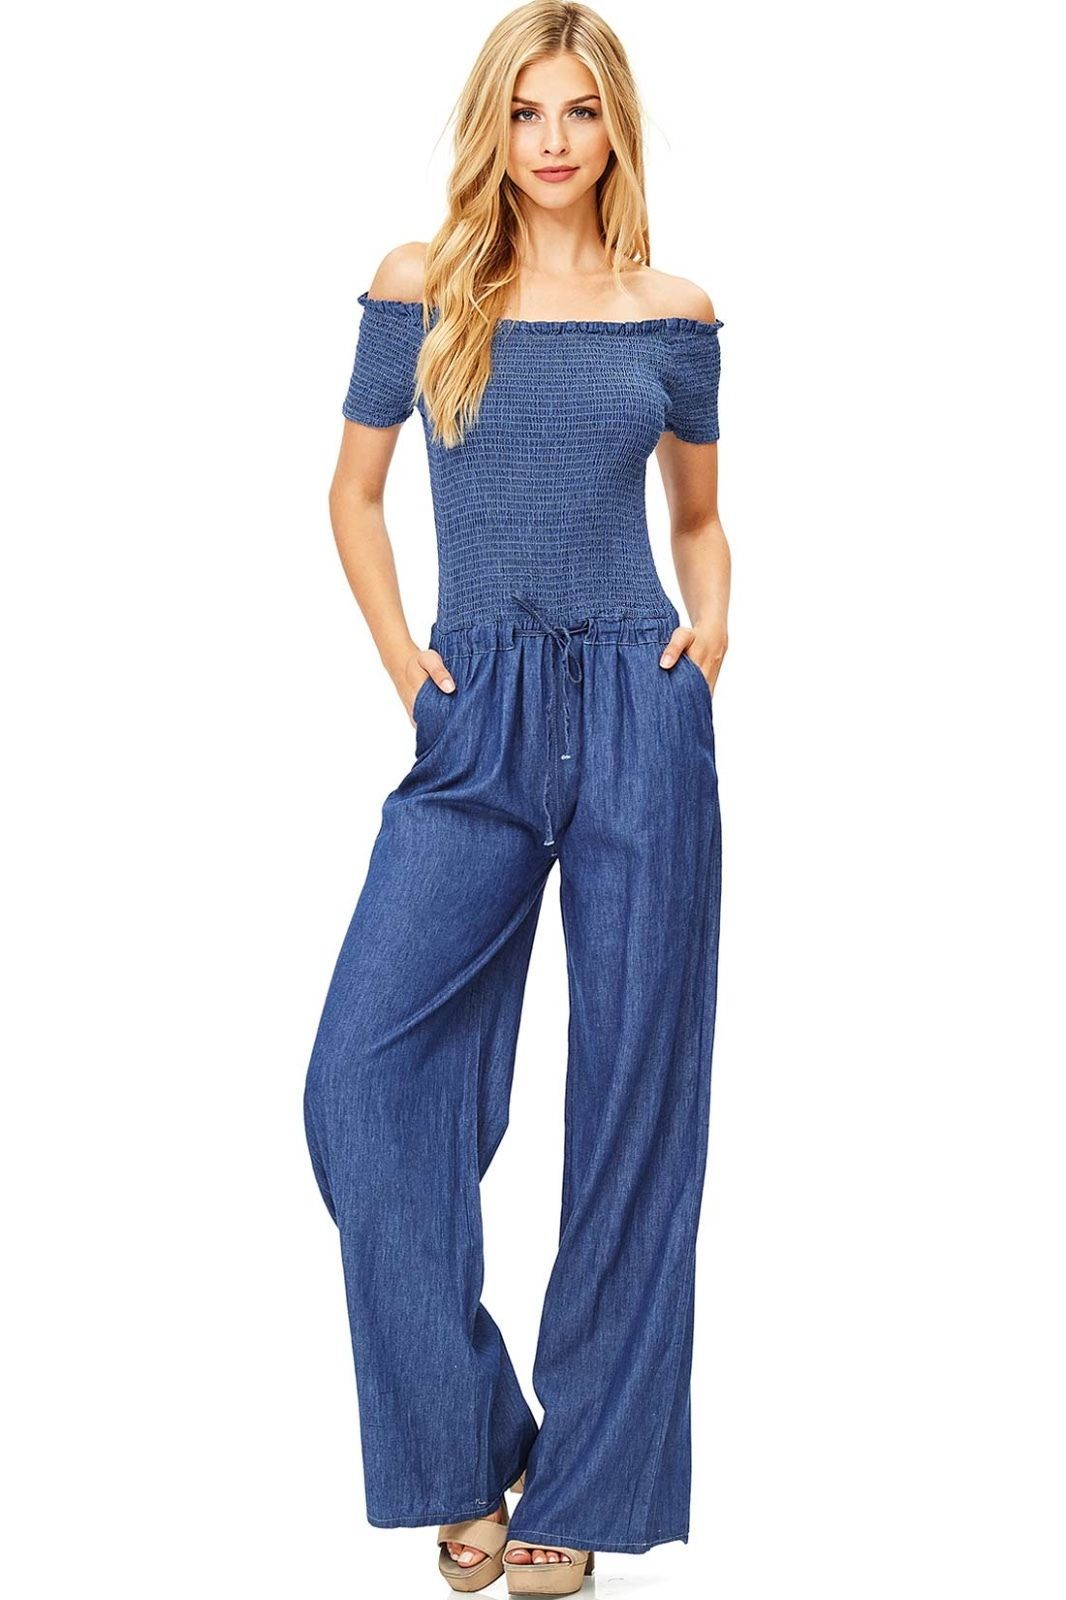 5dc690ae7ba Jumpsuits and Rompers 3009  Chambray Off The Shoulder Smocked Special  Occasion Denim Wide Leg Jumpsuit -  BUY IT NOW ONLY   39.99 on eBay!